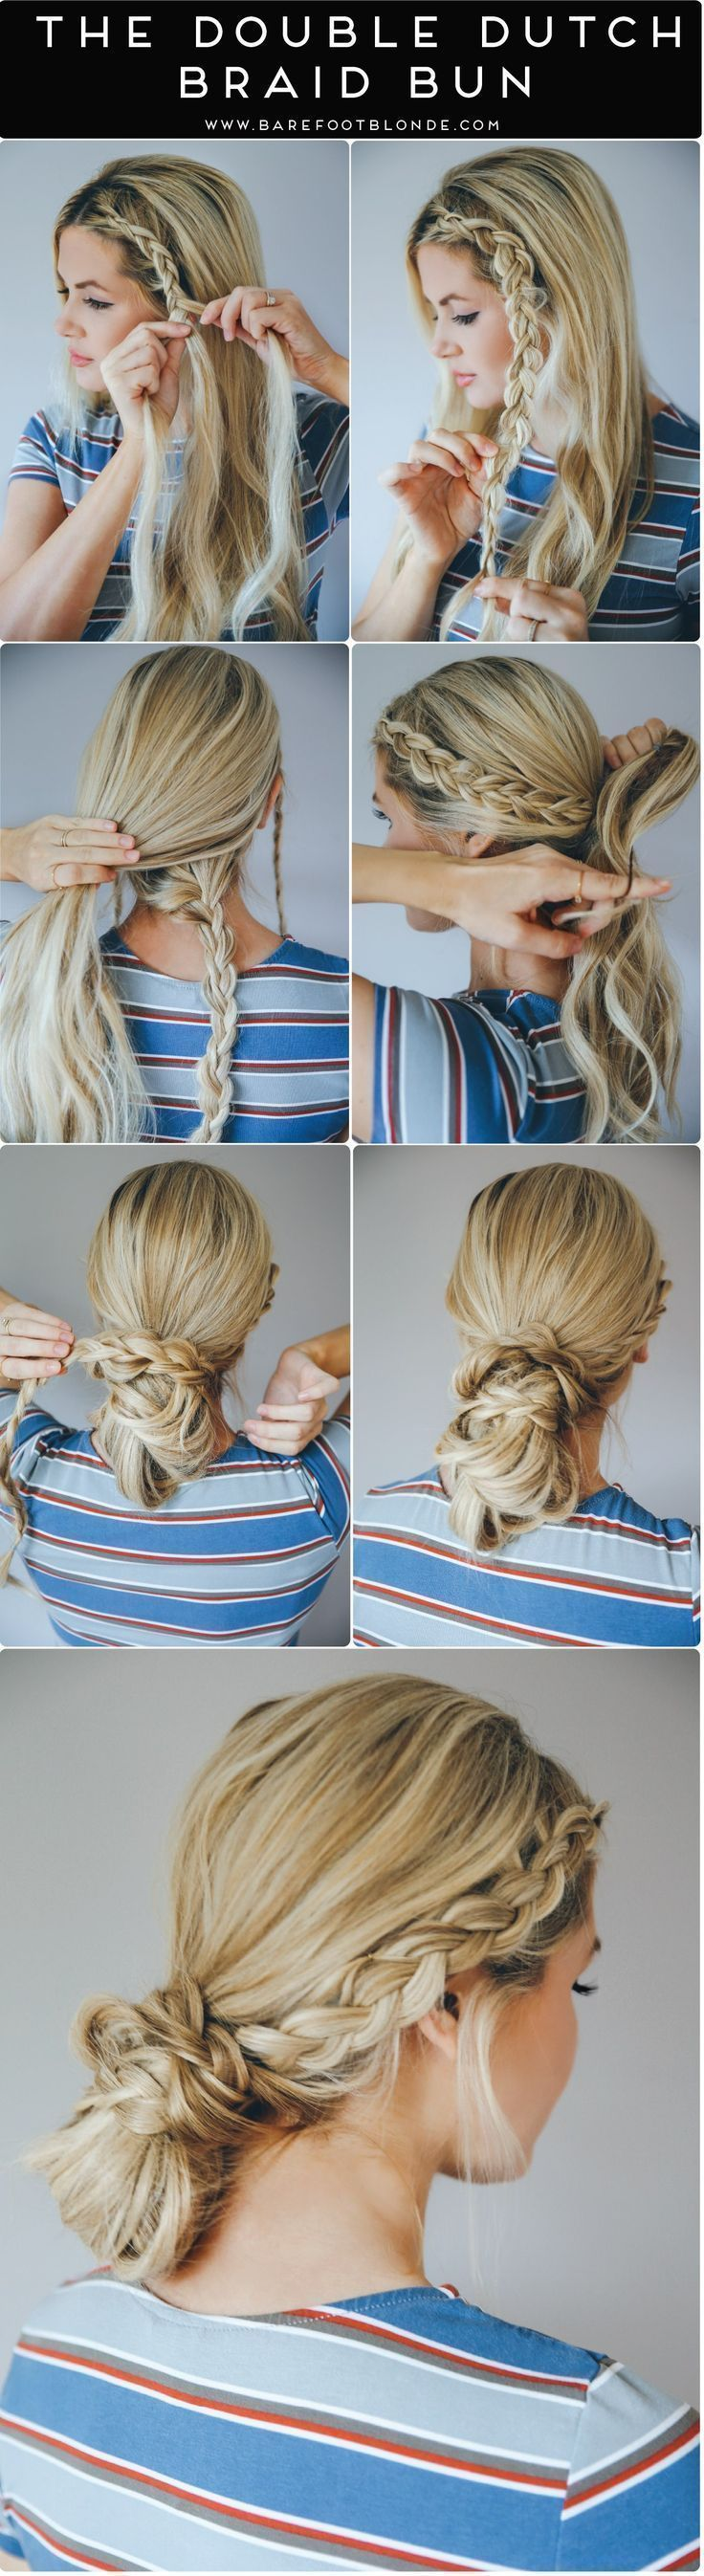 eight Tremendous Simple Braids That Will Repair Any Unhealthy Hair Day